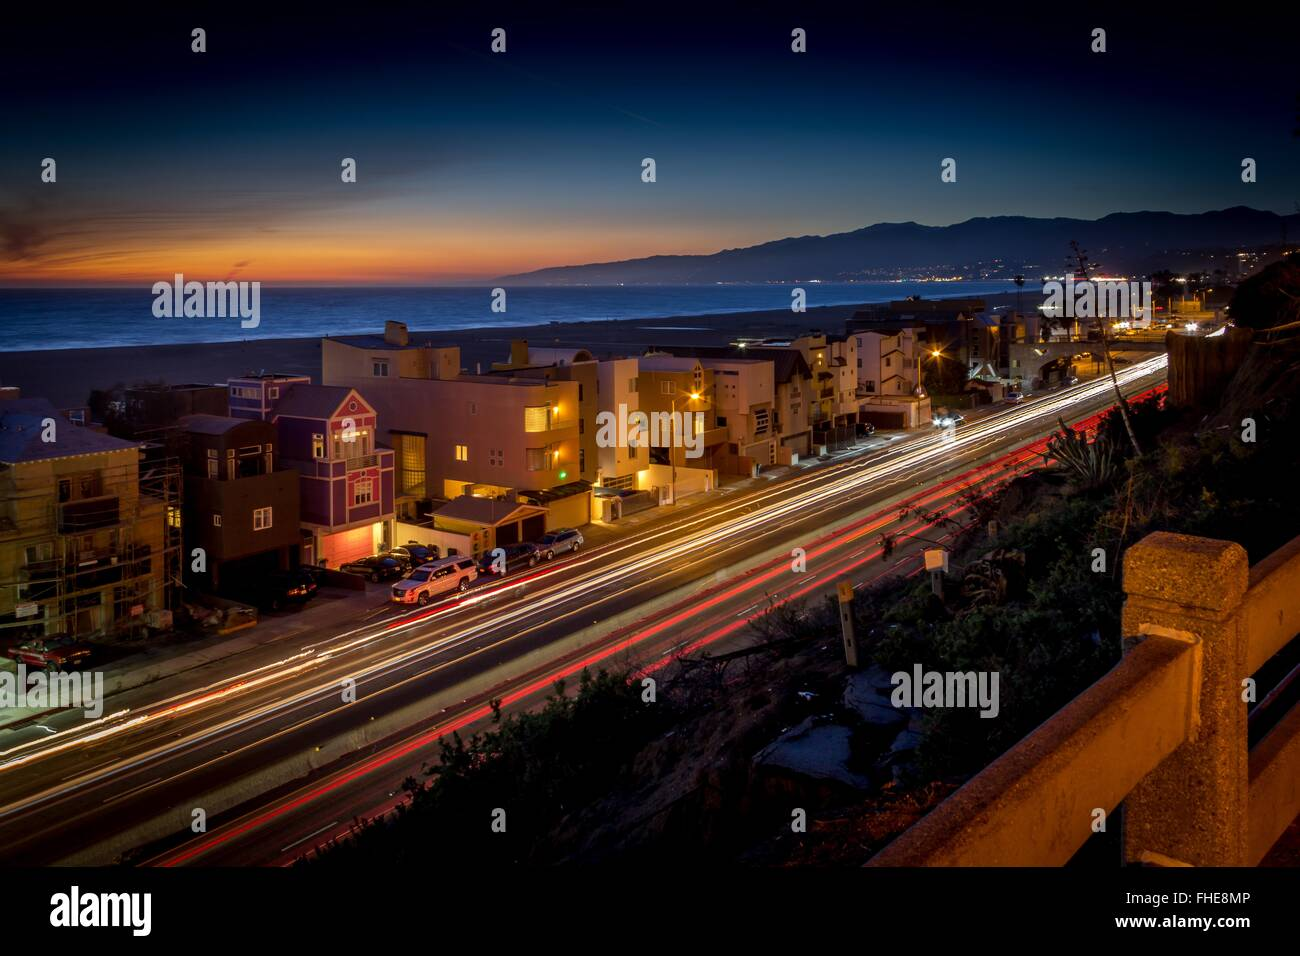 PCH, Pacific Coast Highway, Santa Monica - at sunset looking North to Malibu - Stock Image